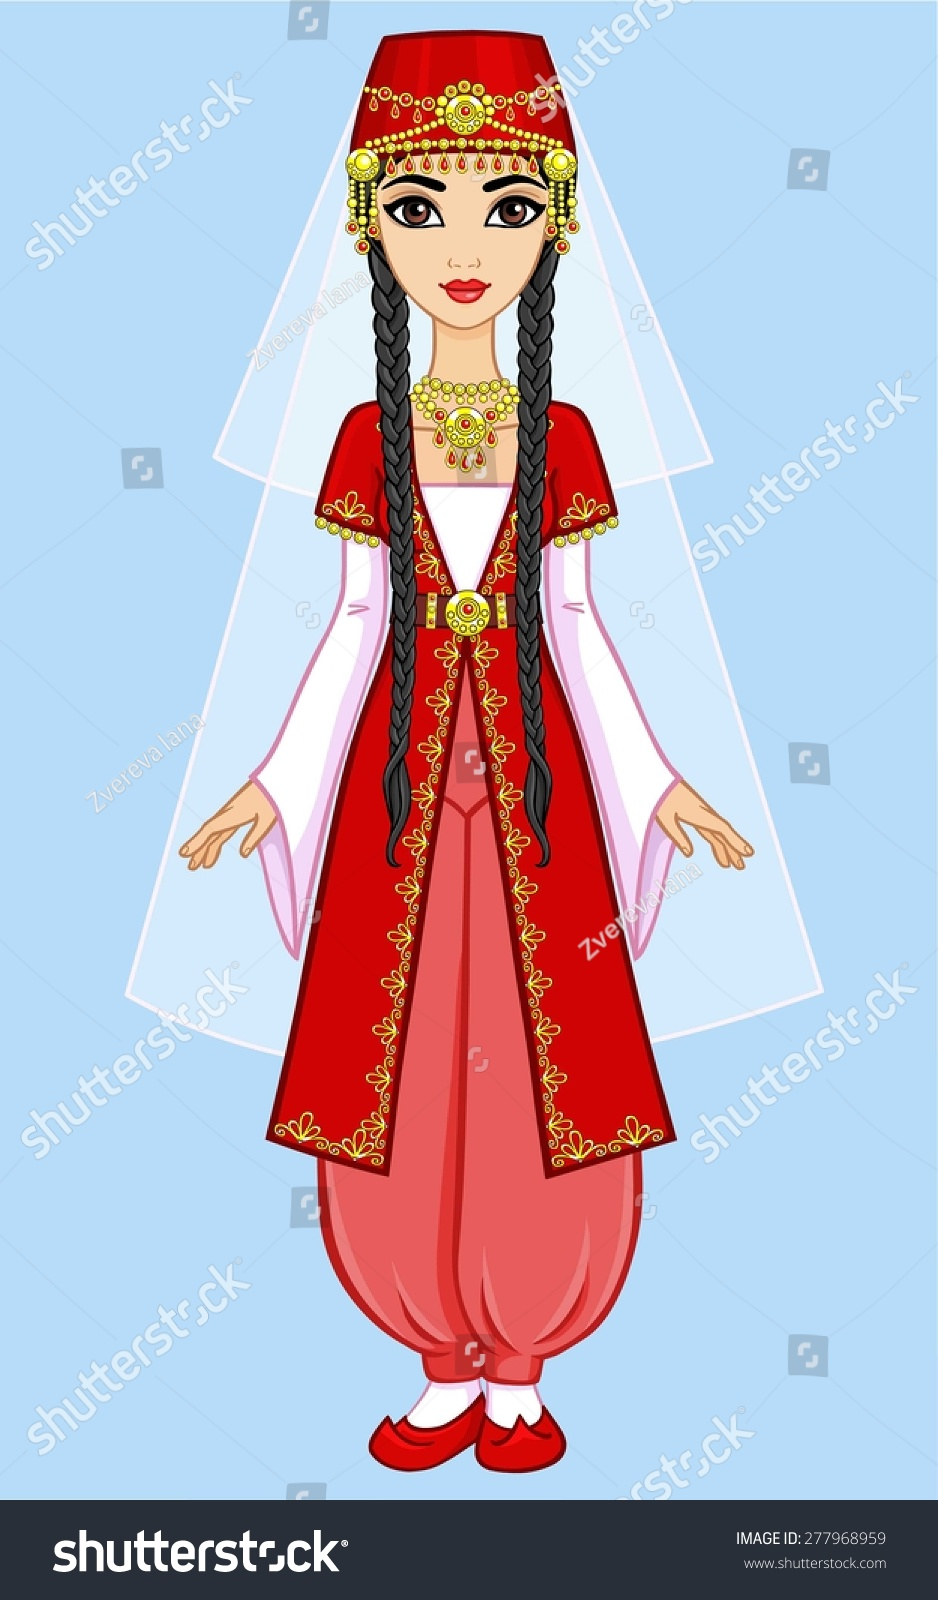 Royalty-free Animation east princess in an ancient ...